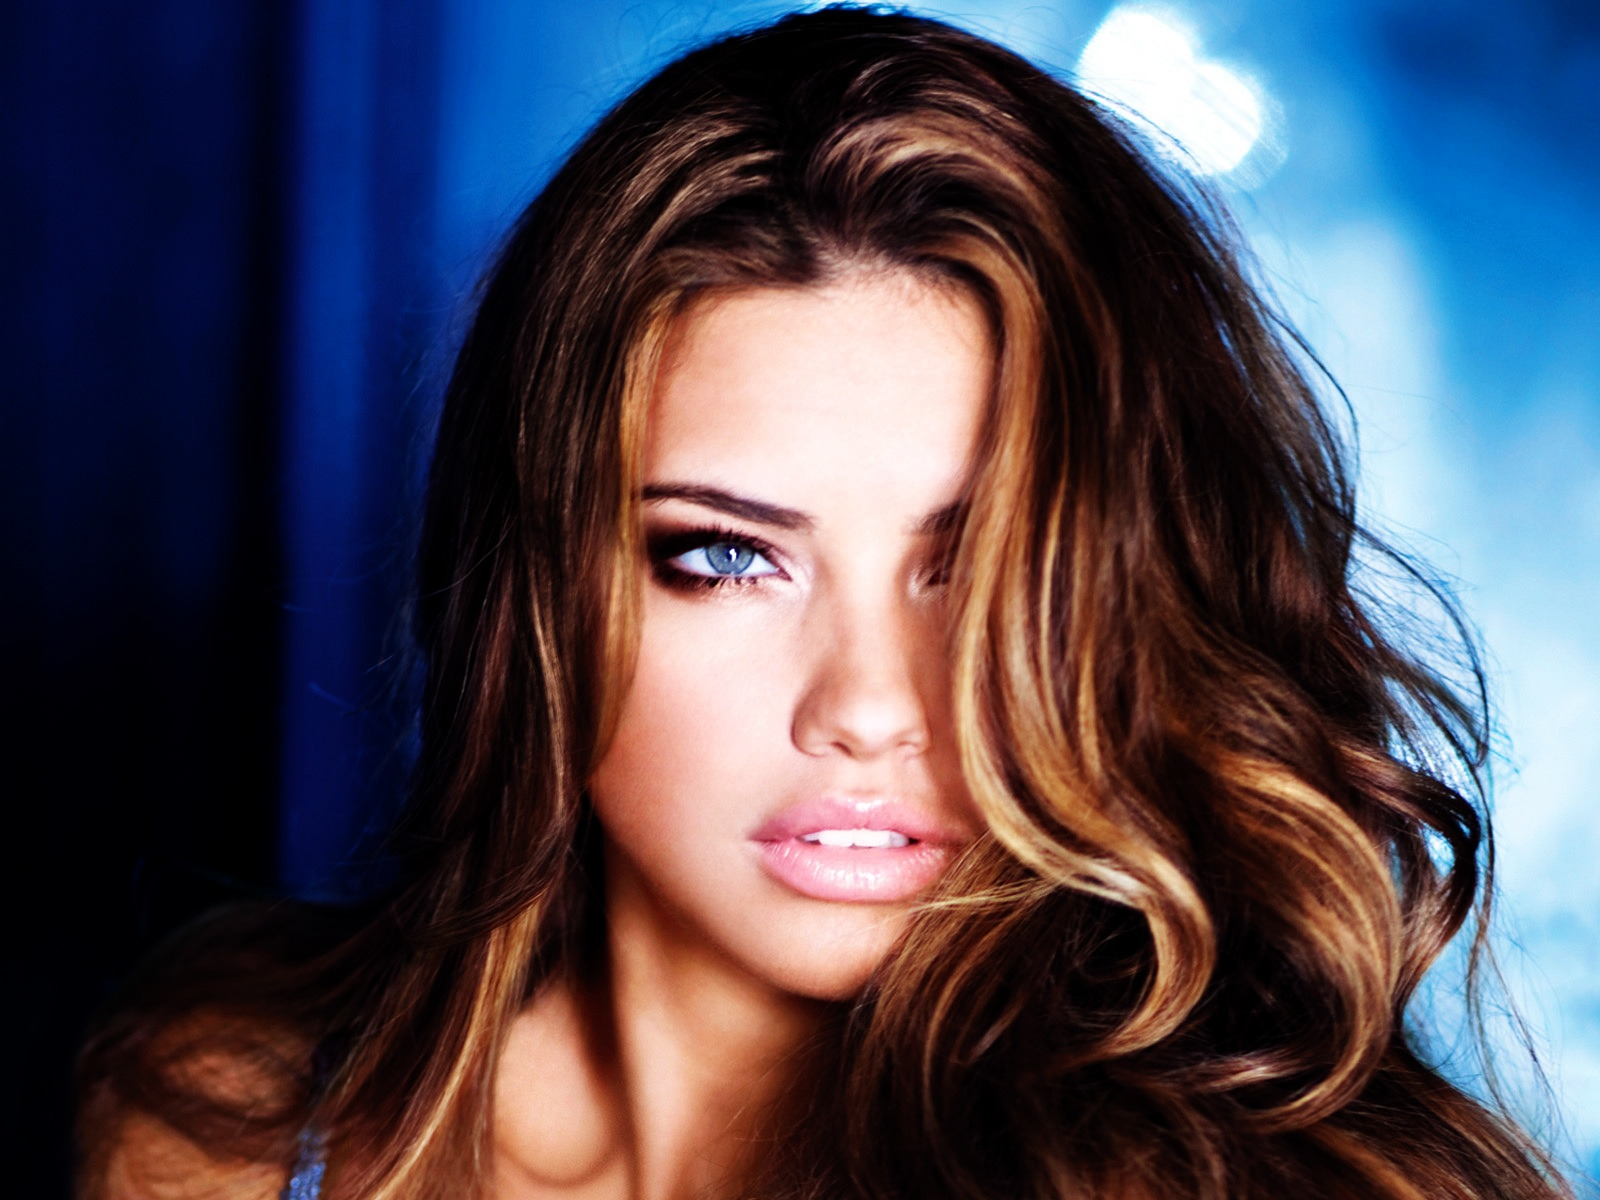 Adriana Lima Style for 1600 x 1200 resolution